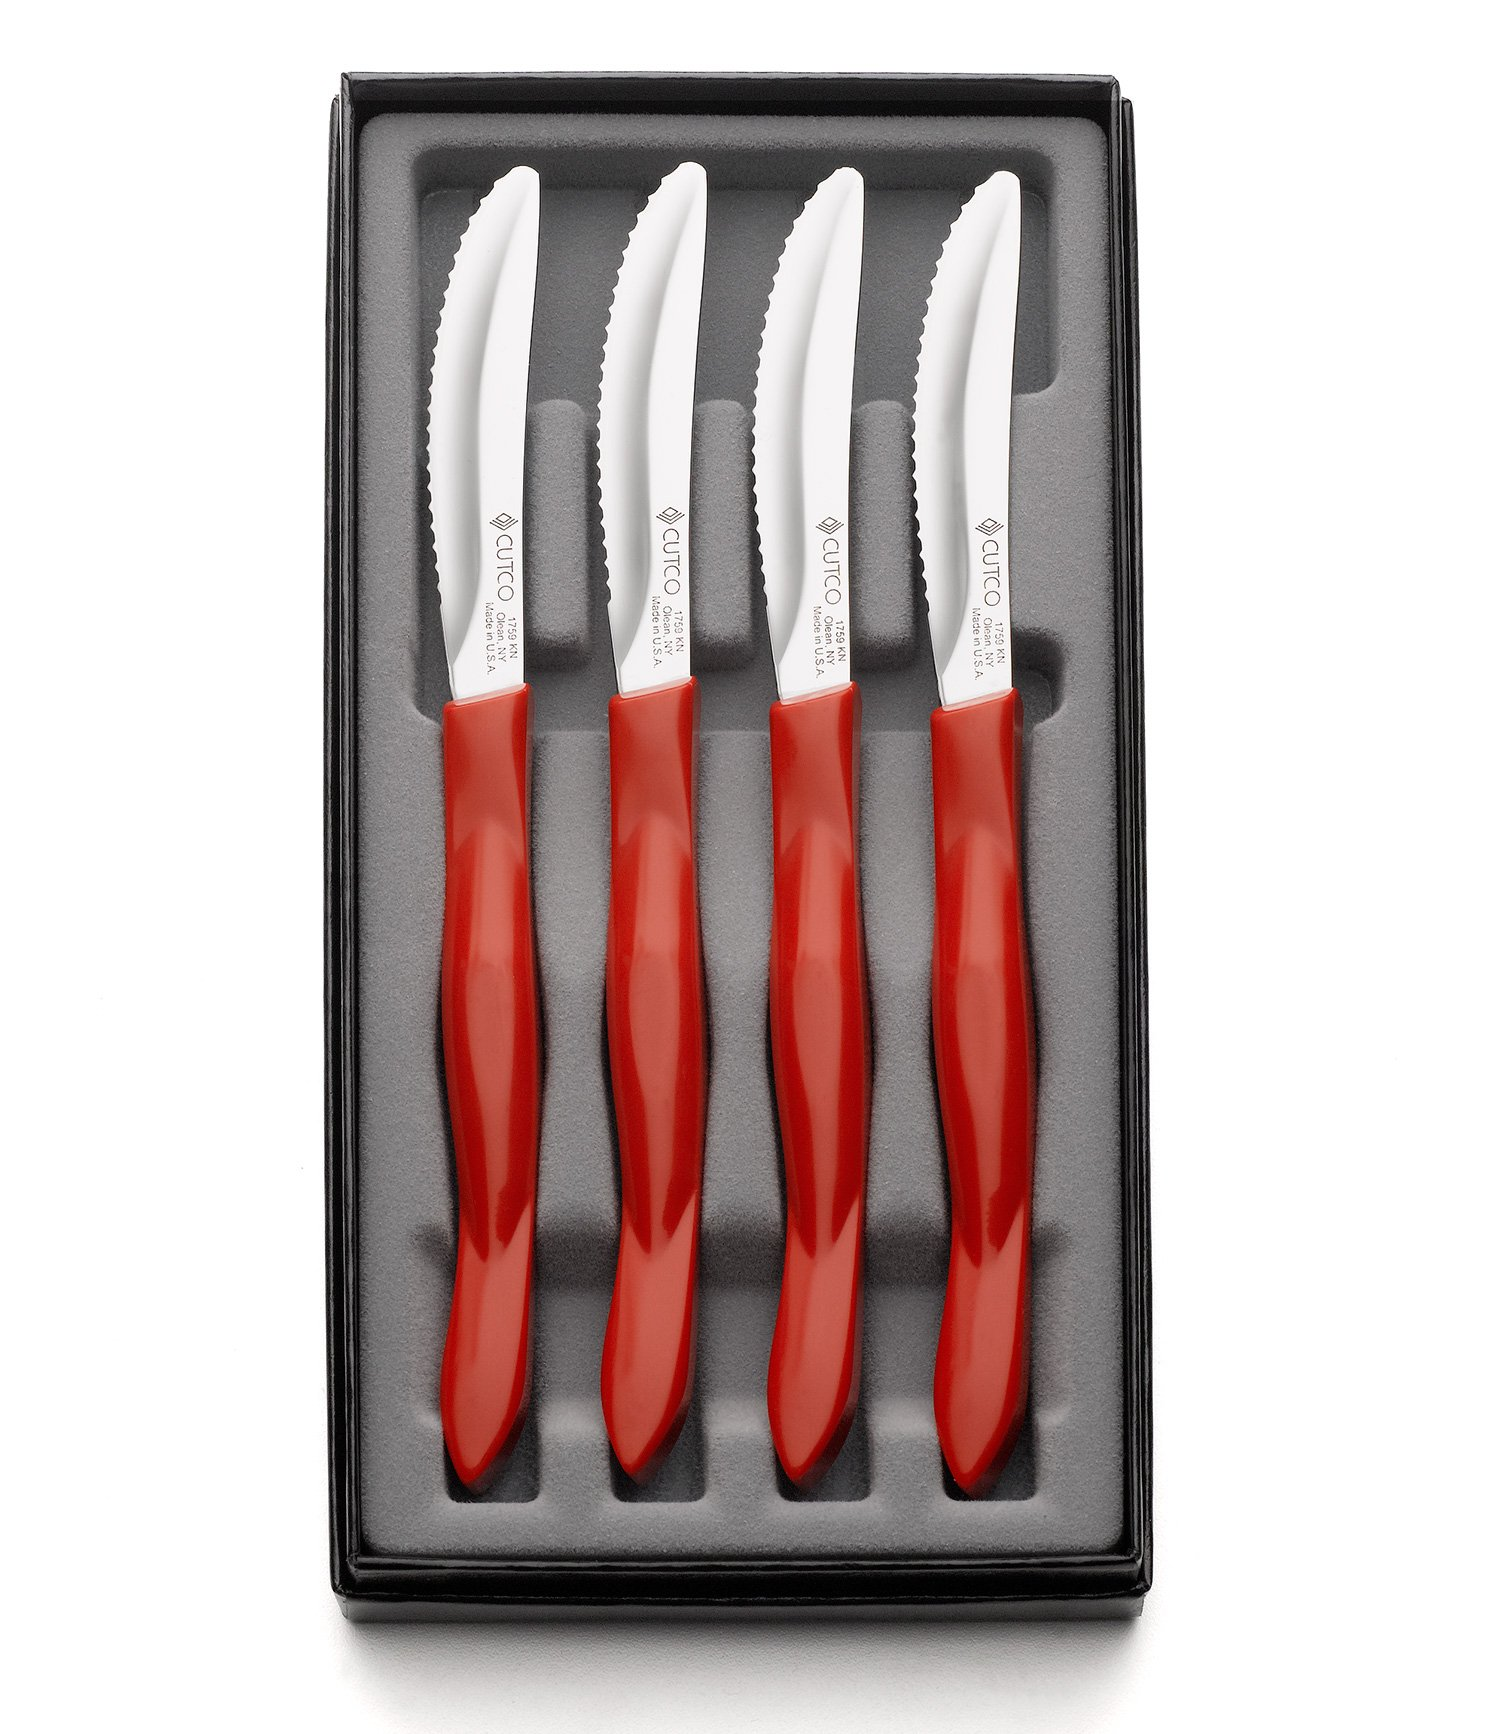 Cutco #1865 4-Pc. Table Knife Set in Gift Box (Red handle) by Cutco